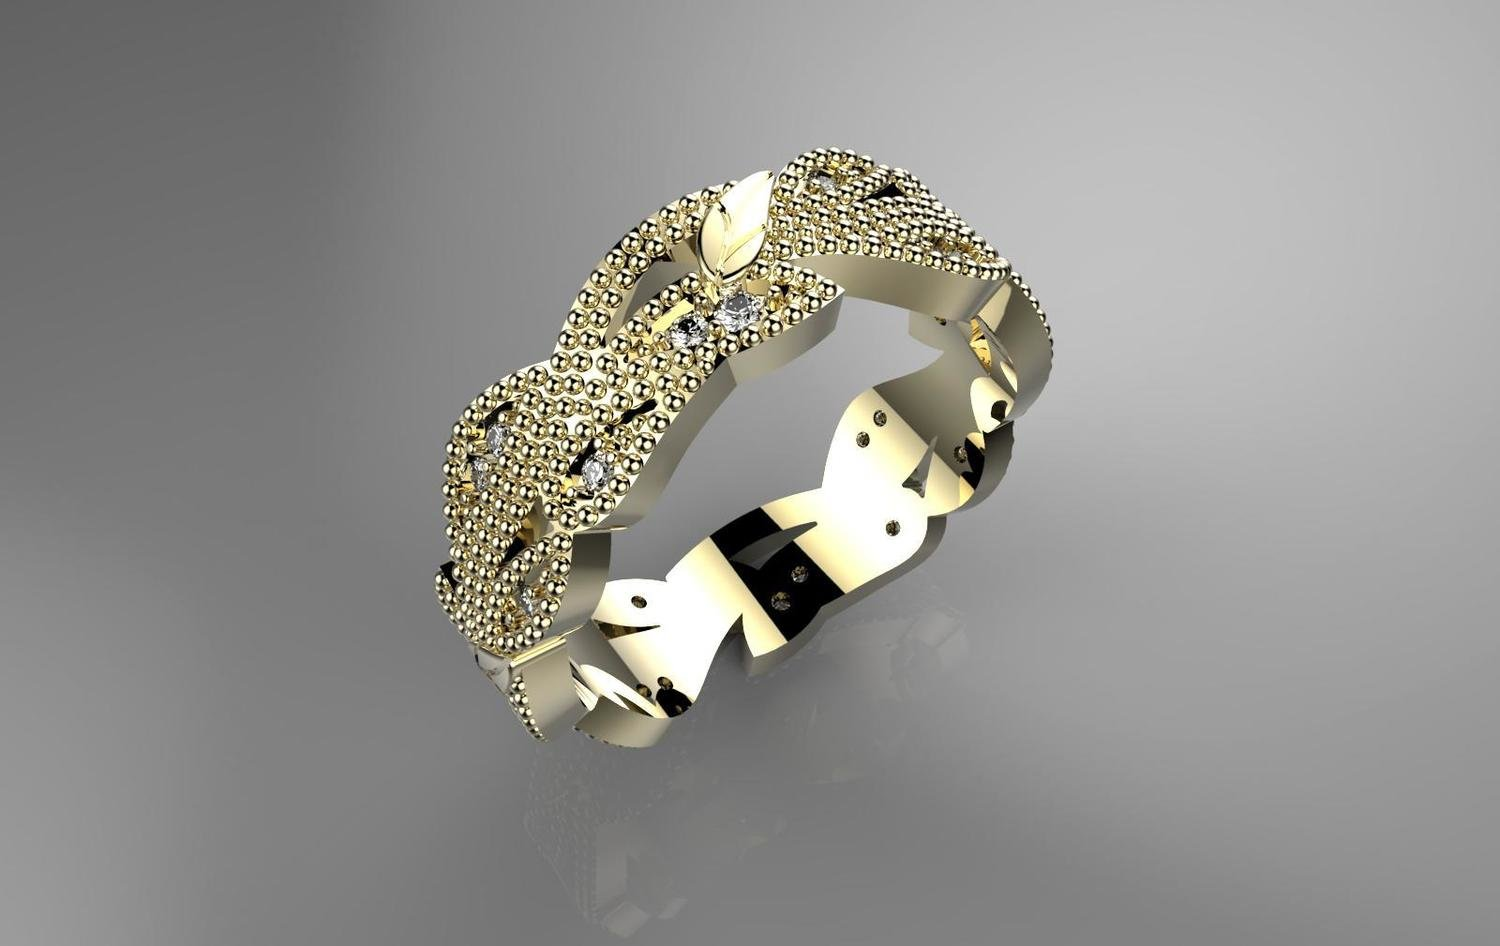 3D CAD Model of Wedding Ring with Diamonds